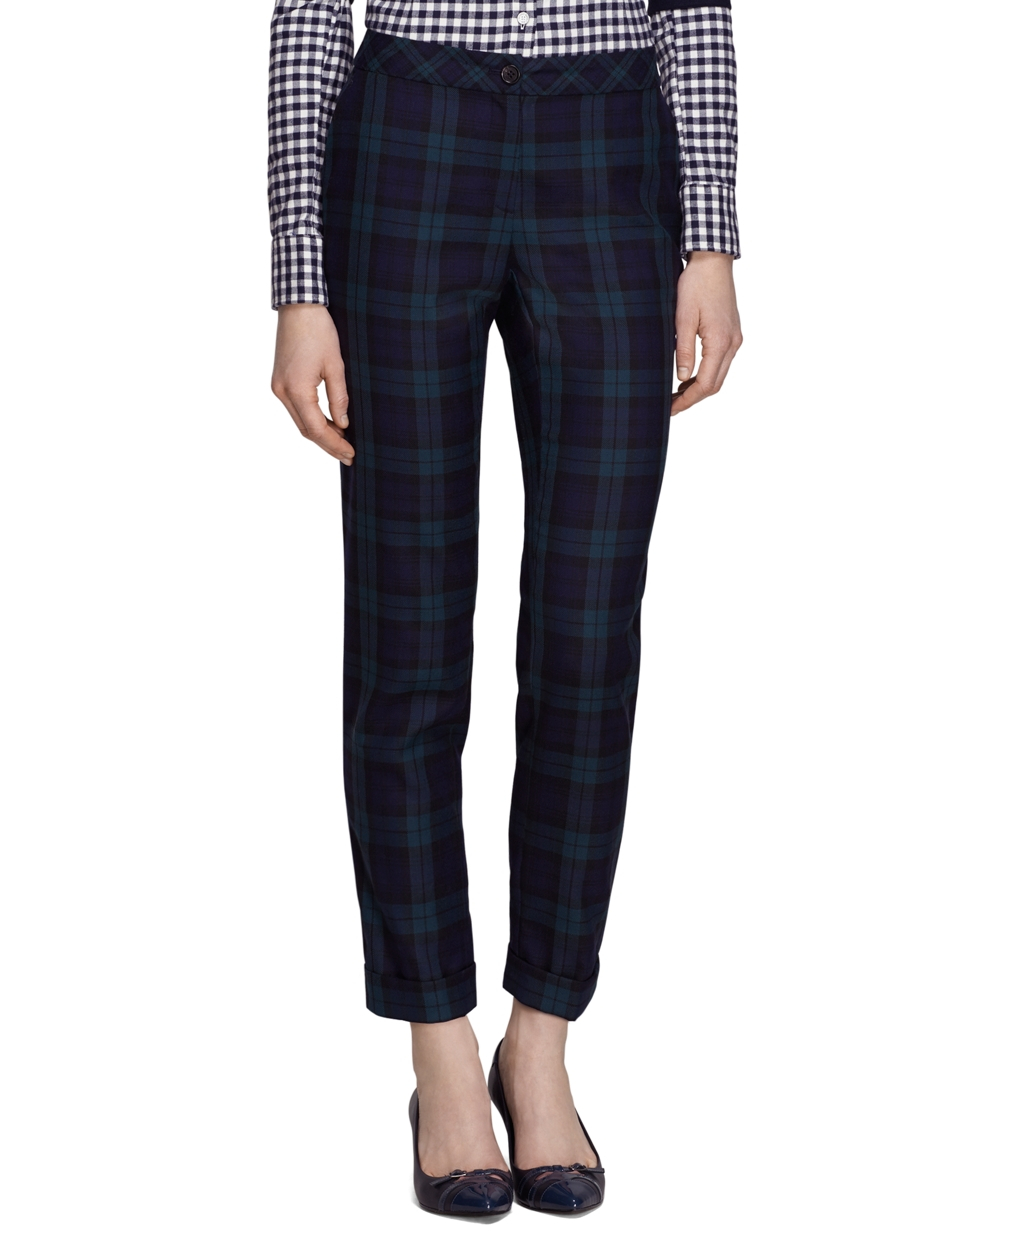 Find great deals on eBay for black watch tartan pants. Shop with confidence.